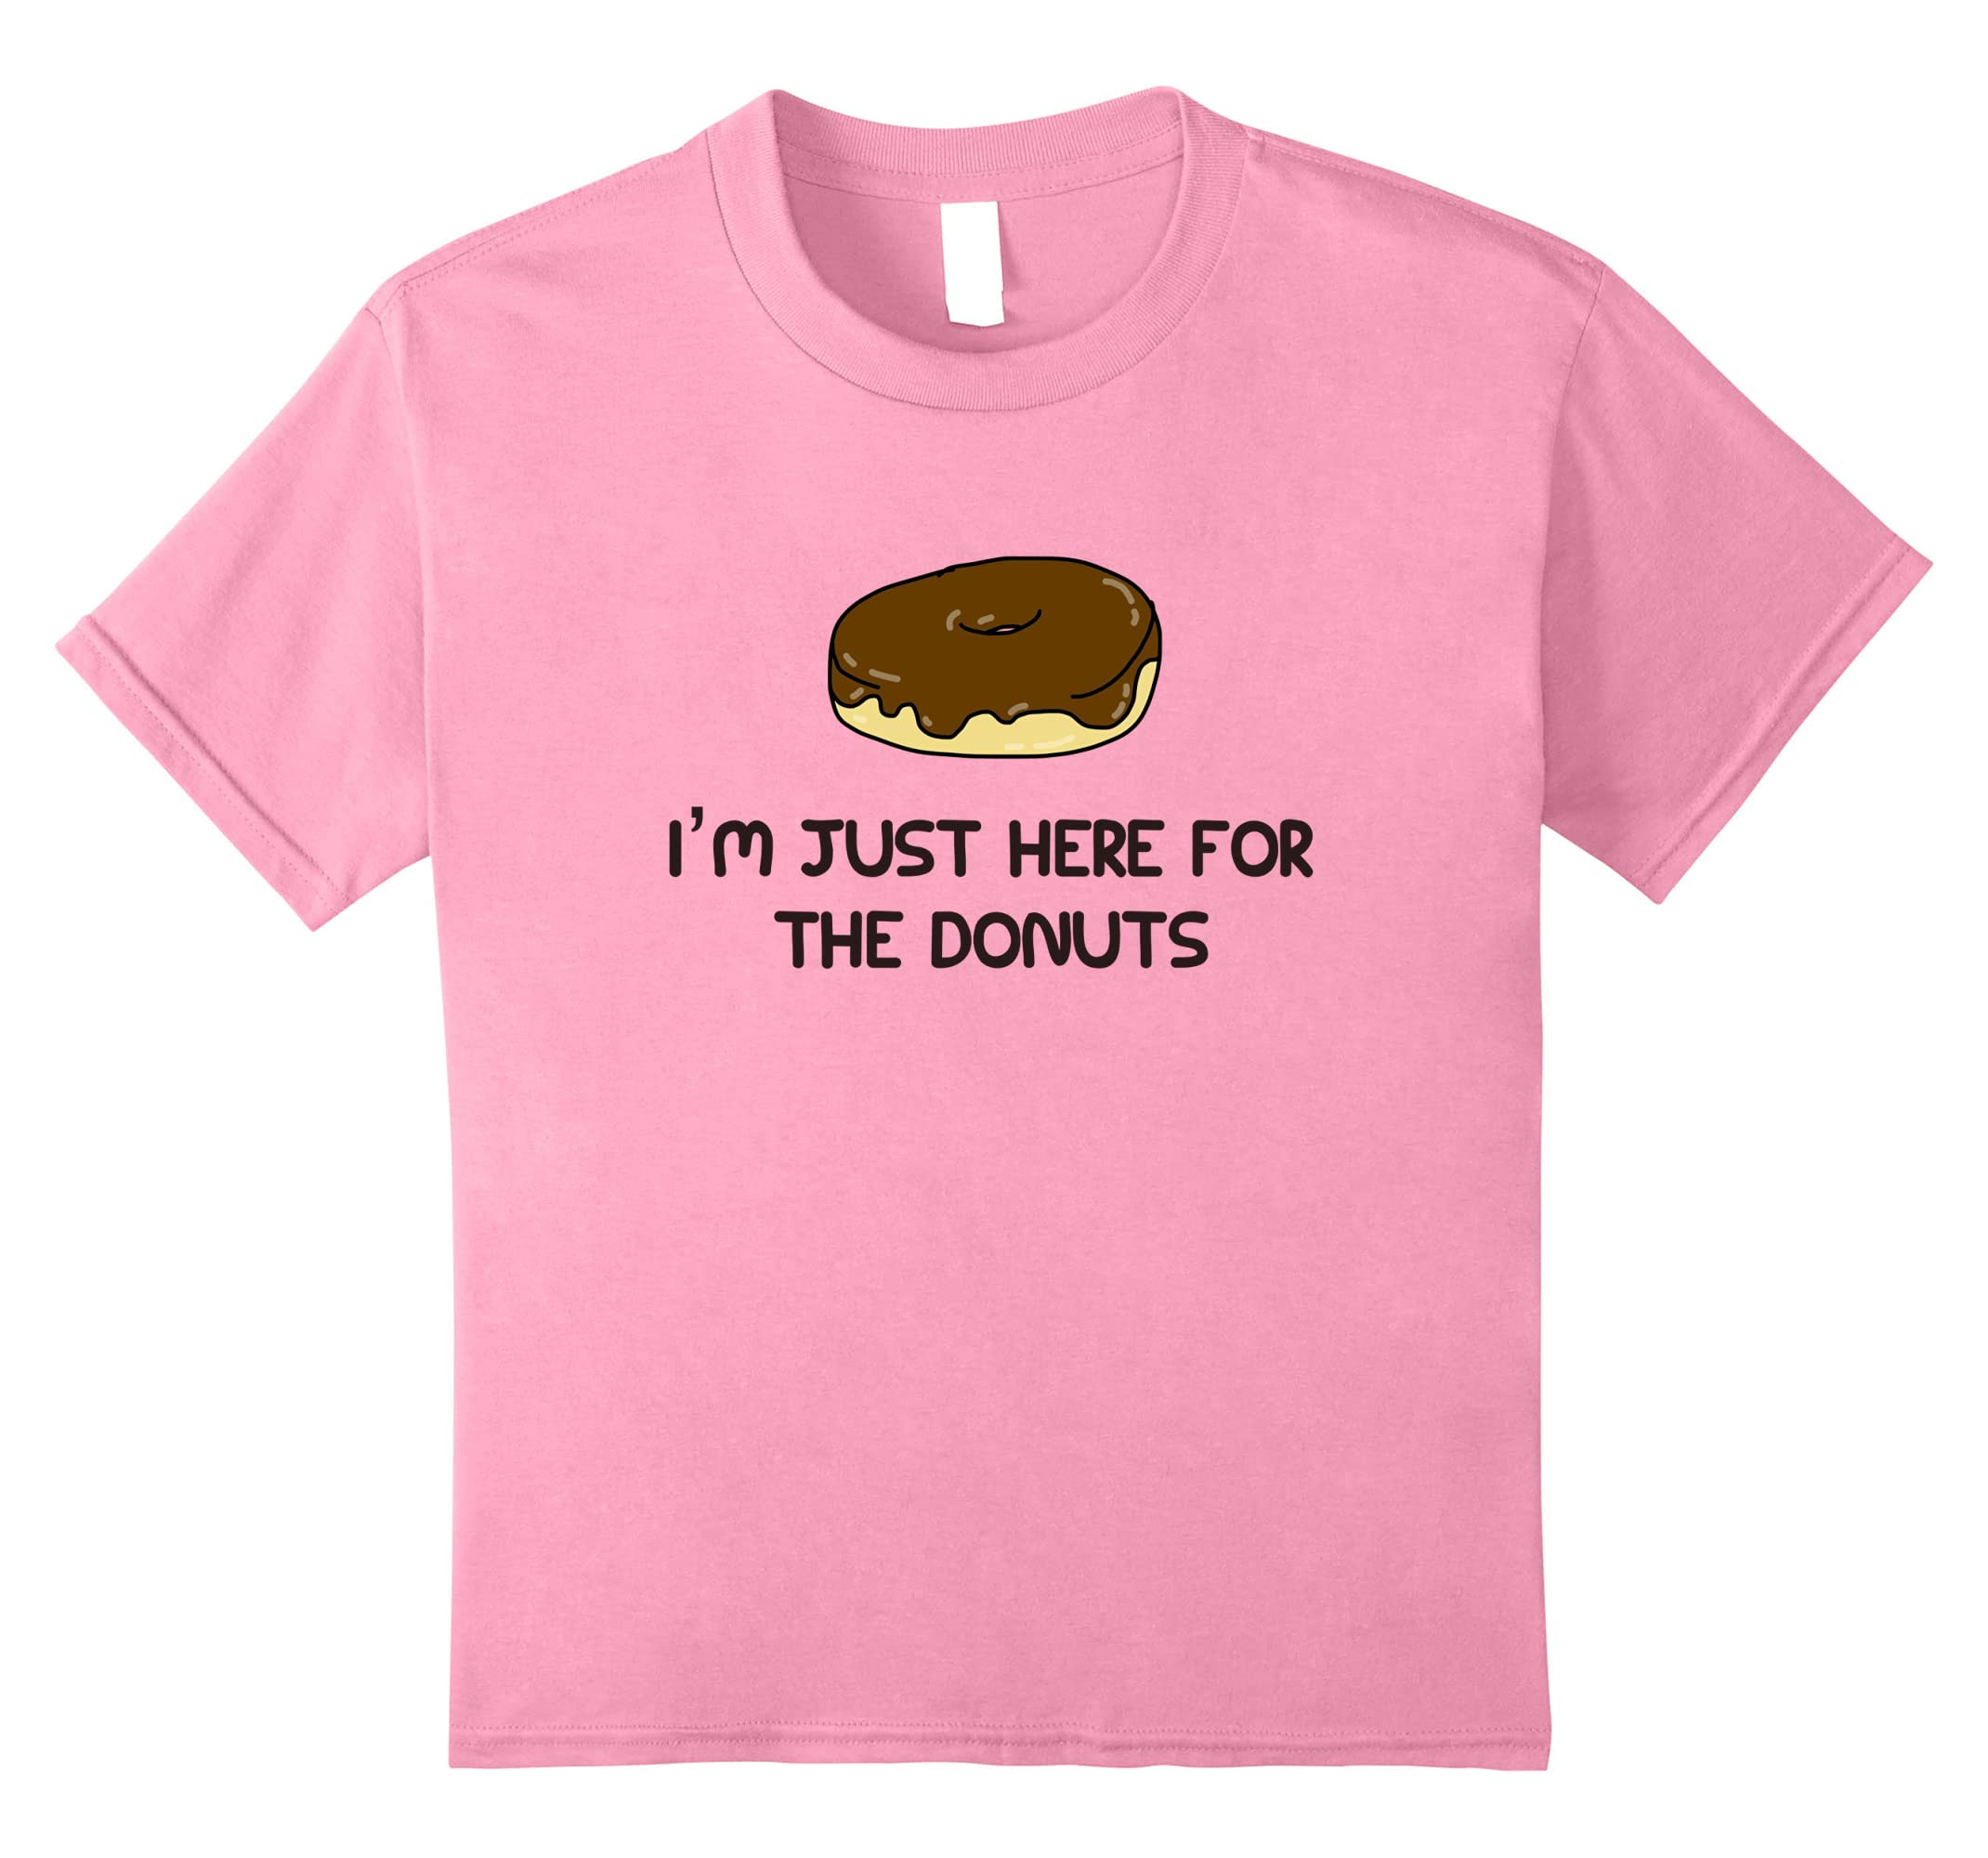 42b214bc Amazon.com: I'm Just Here For The Donuts Funny T-Shirt: Clothing